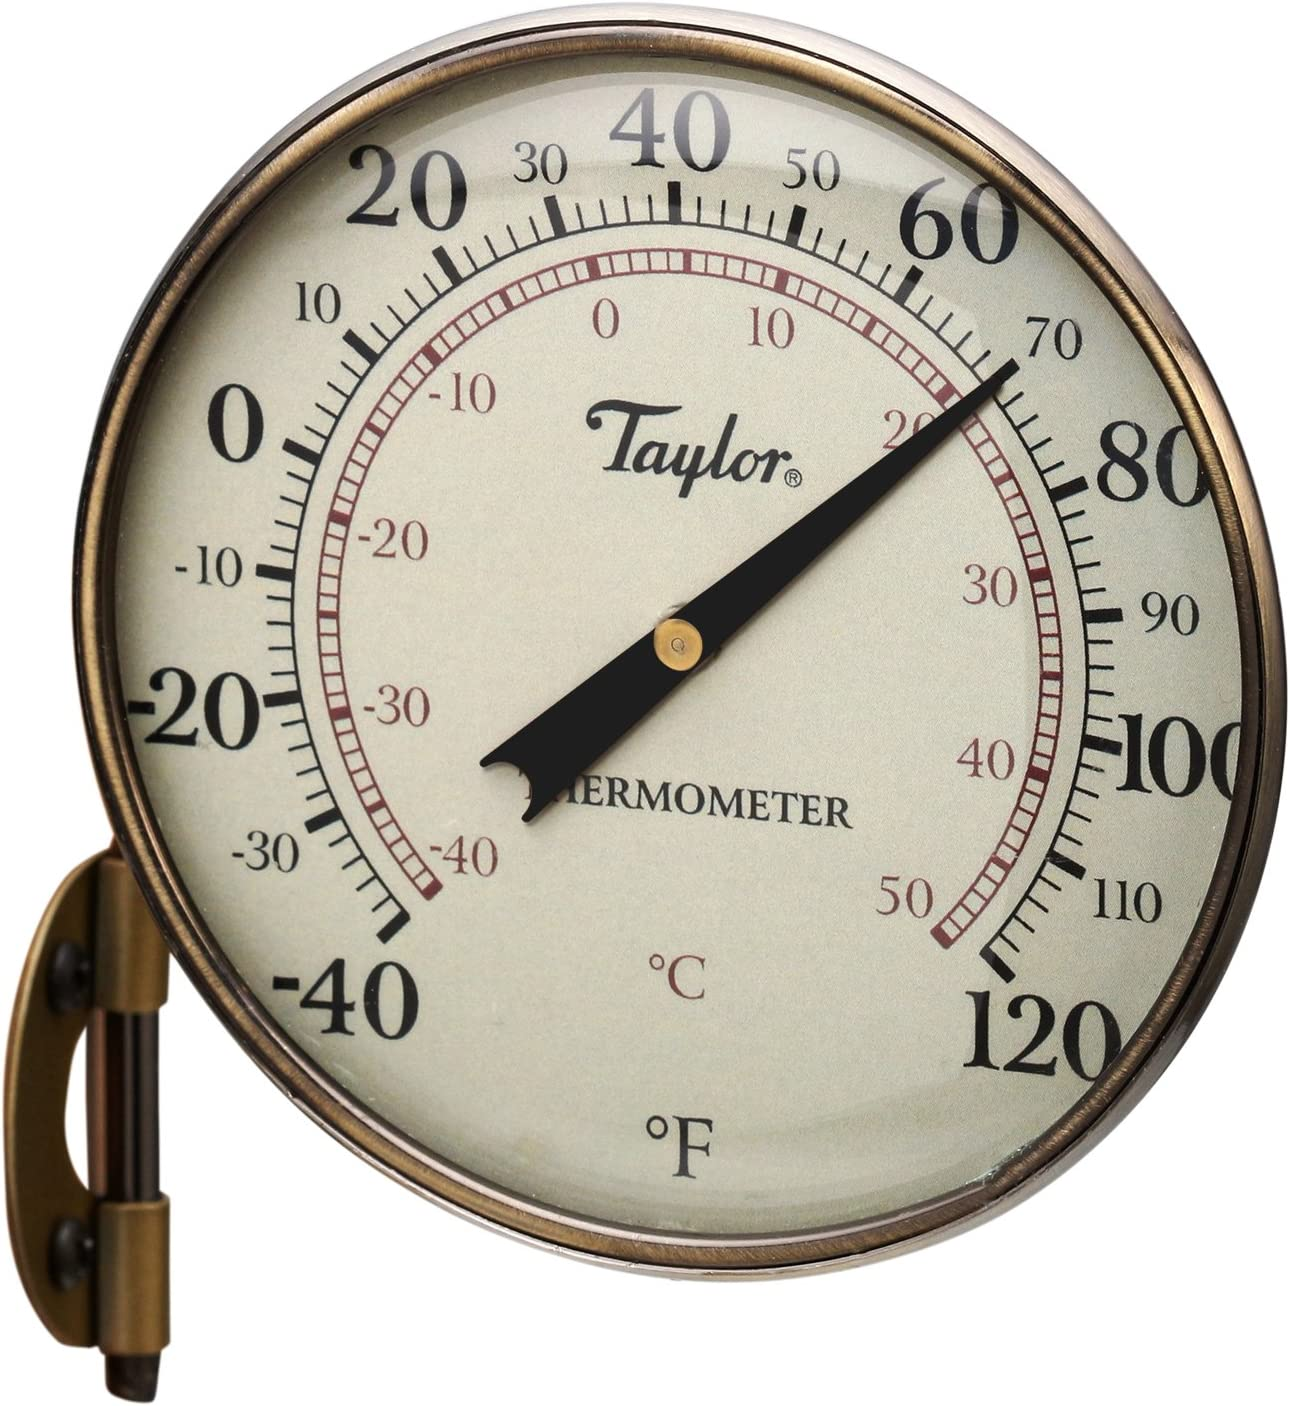 Taylor Precision Products Heritage Metal Dial Thermometer 4.25-Inch